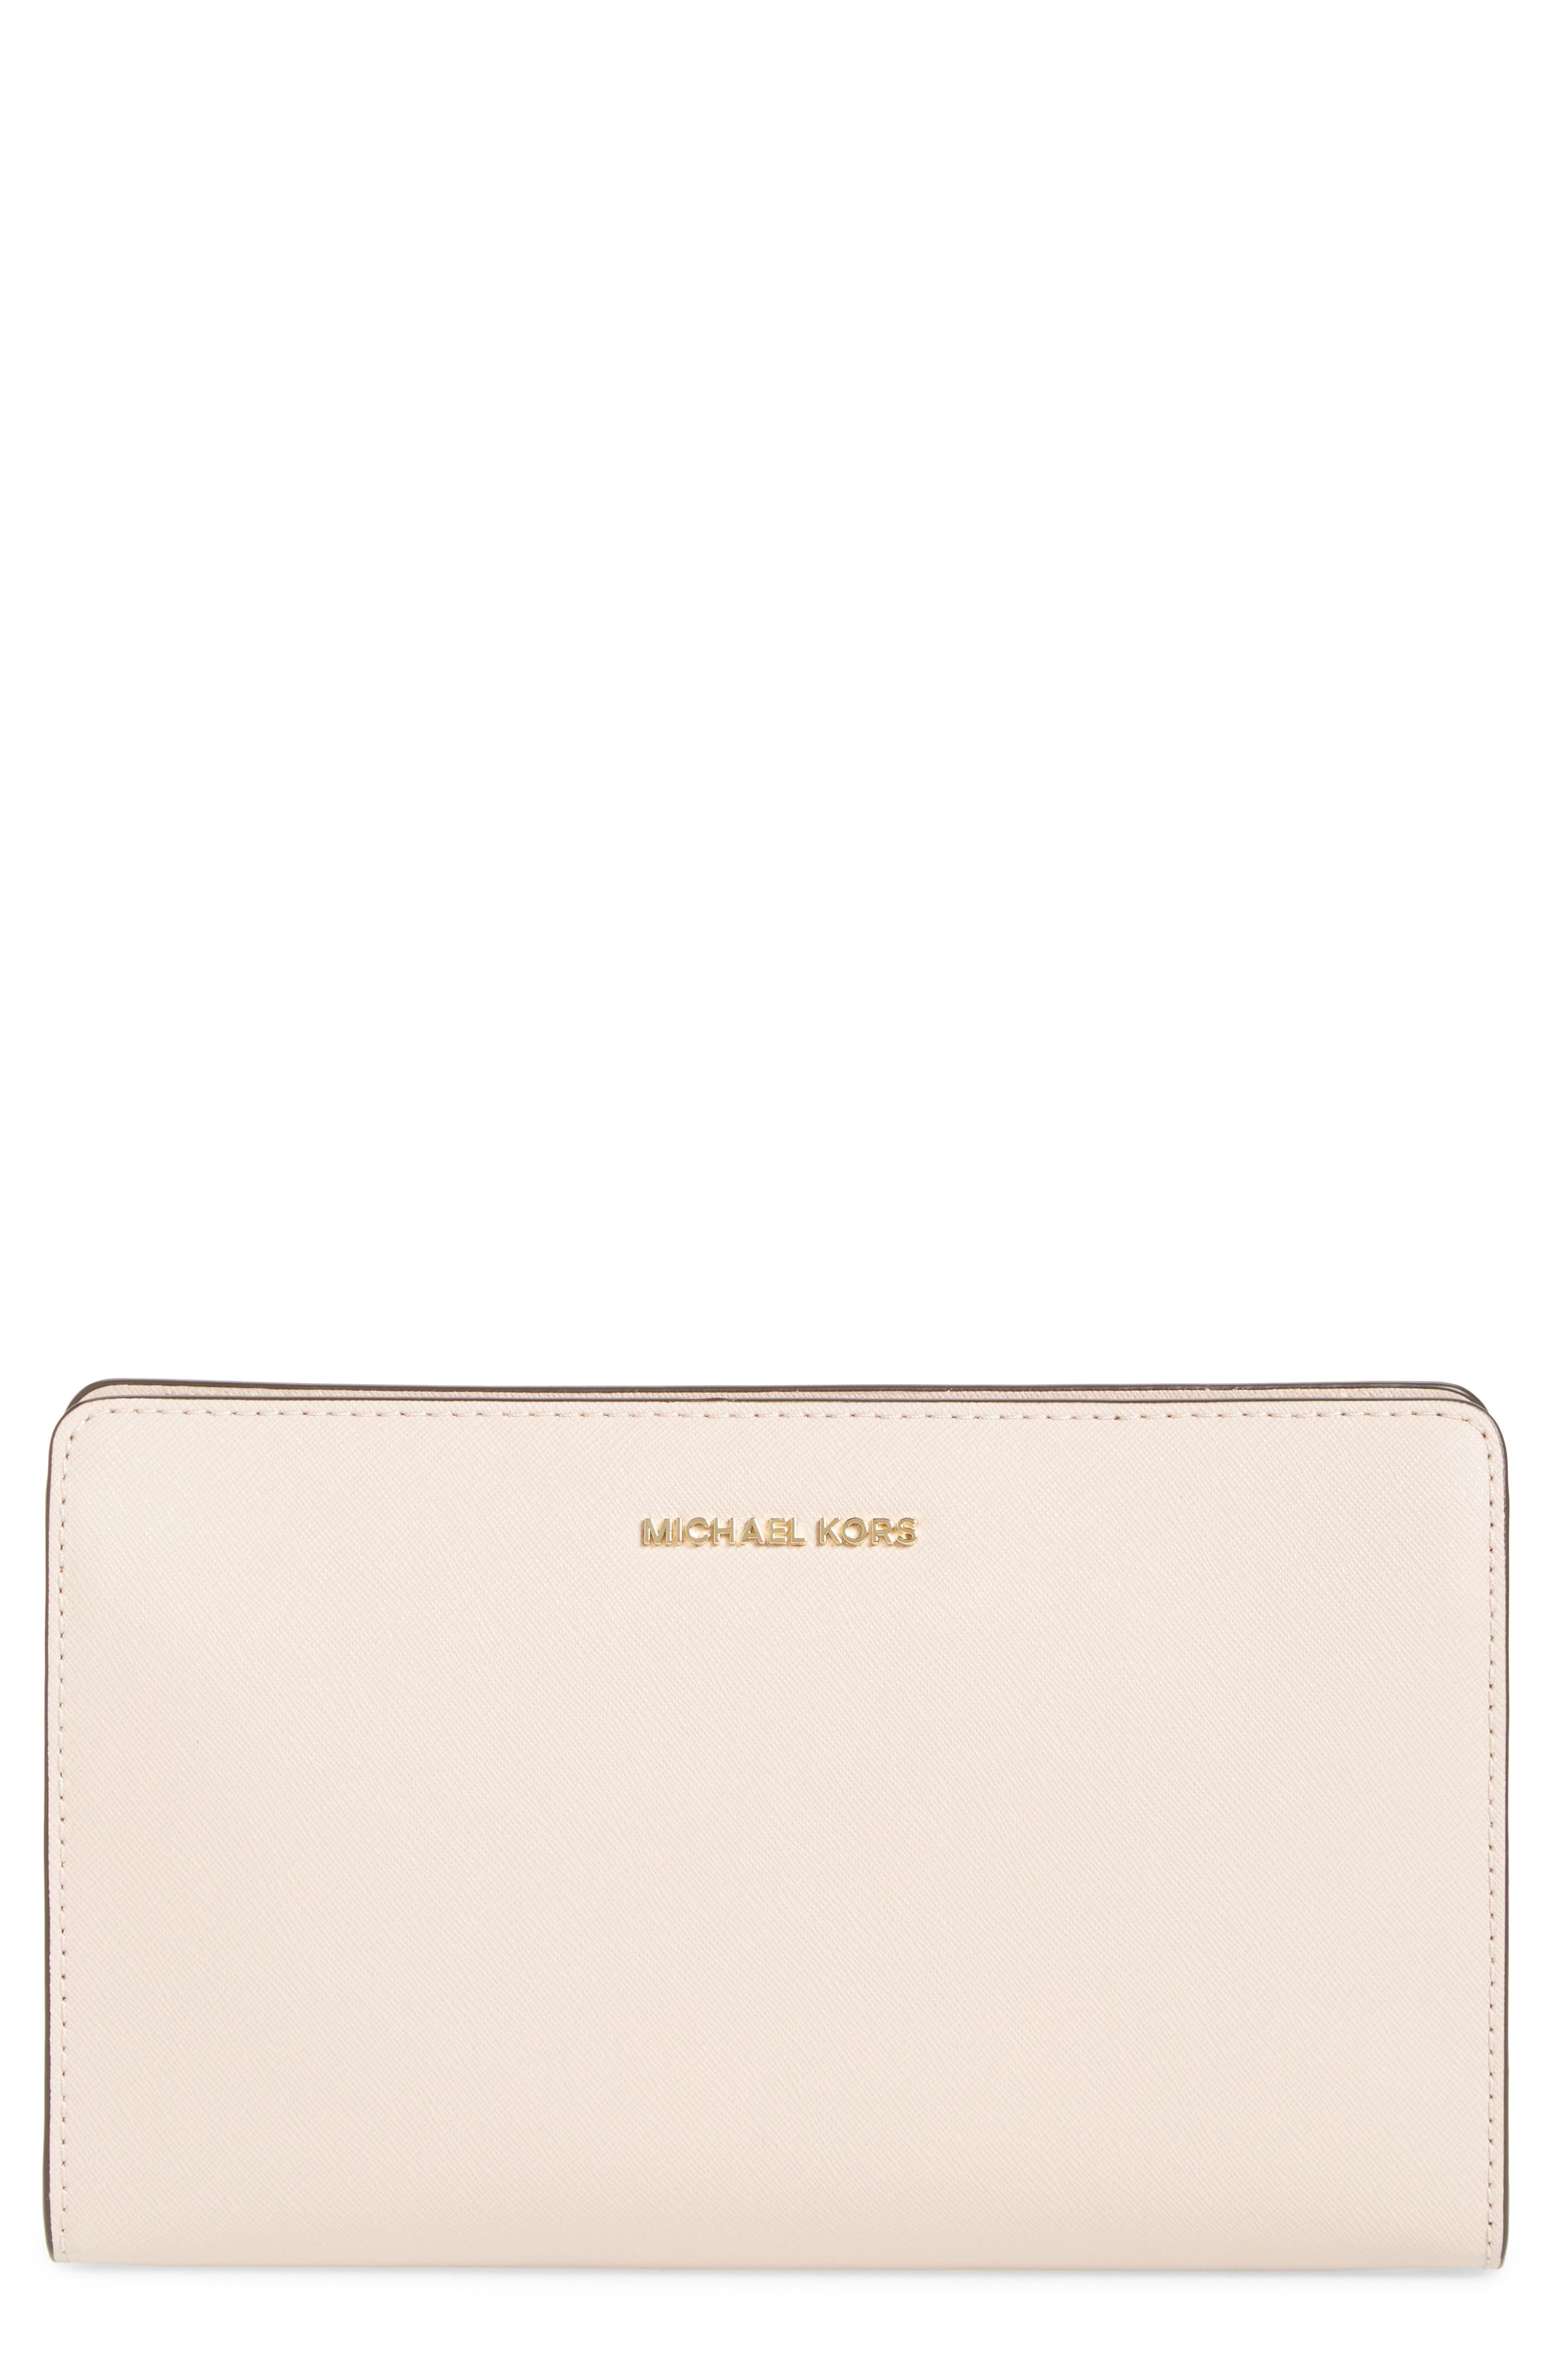 d6dd32e0bce3 Buy pink michael kors crossbody > OFF65% Discounted